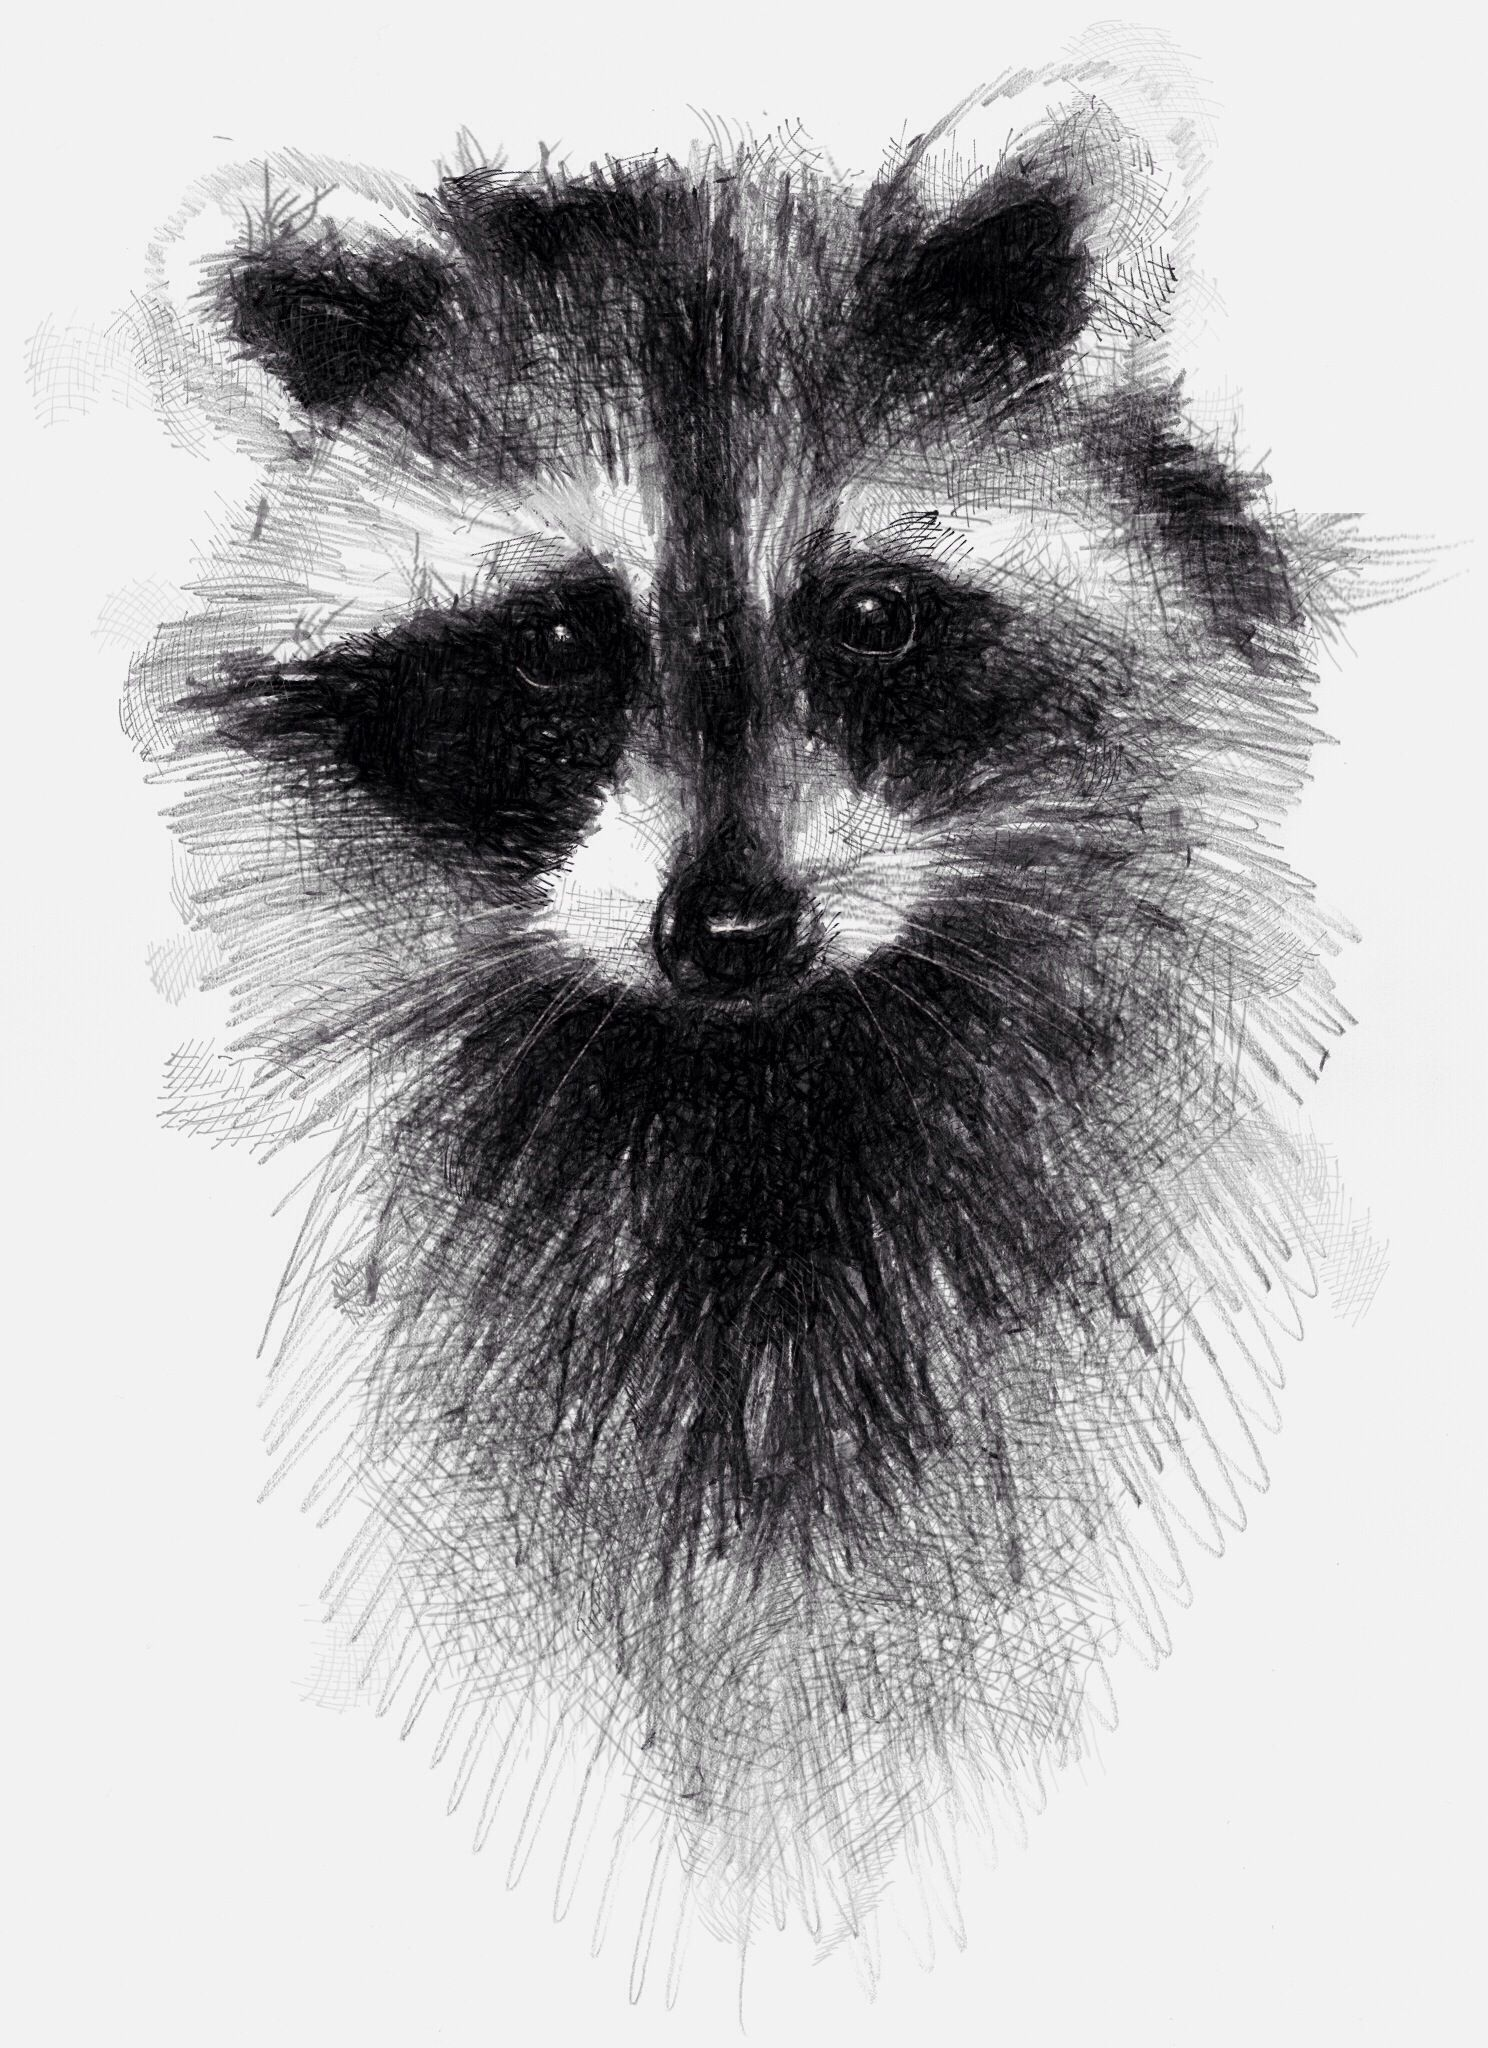 Standing up racoon clipart black and white jpg black and white library Raccoon and 365 | DRAWING IDEAS | Animal drawings, Drawings ... jpg black and white library